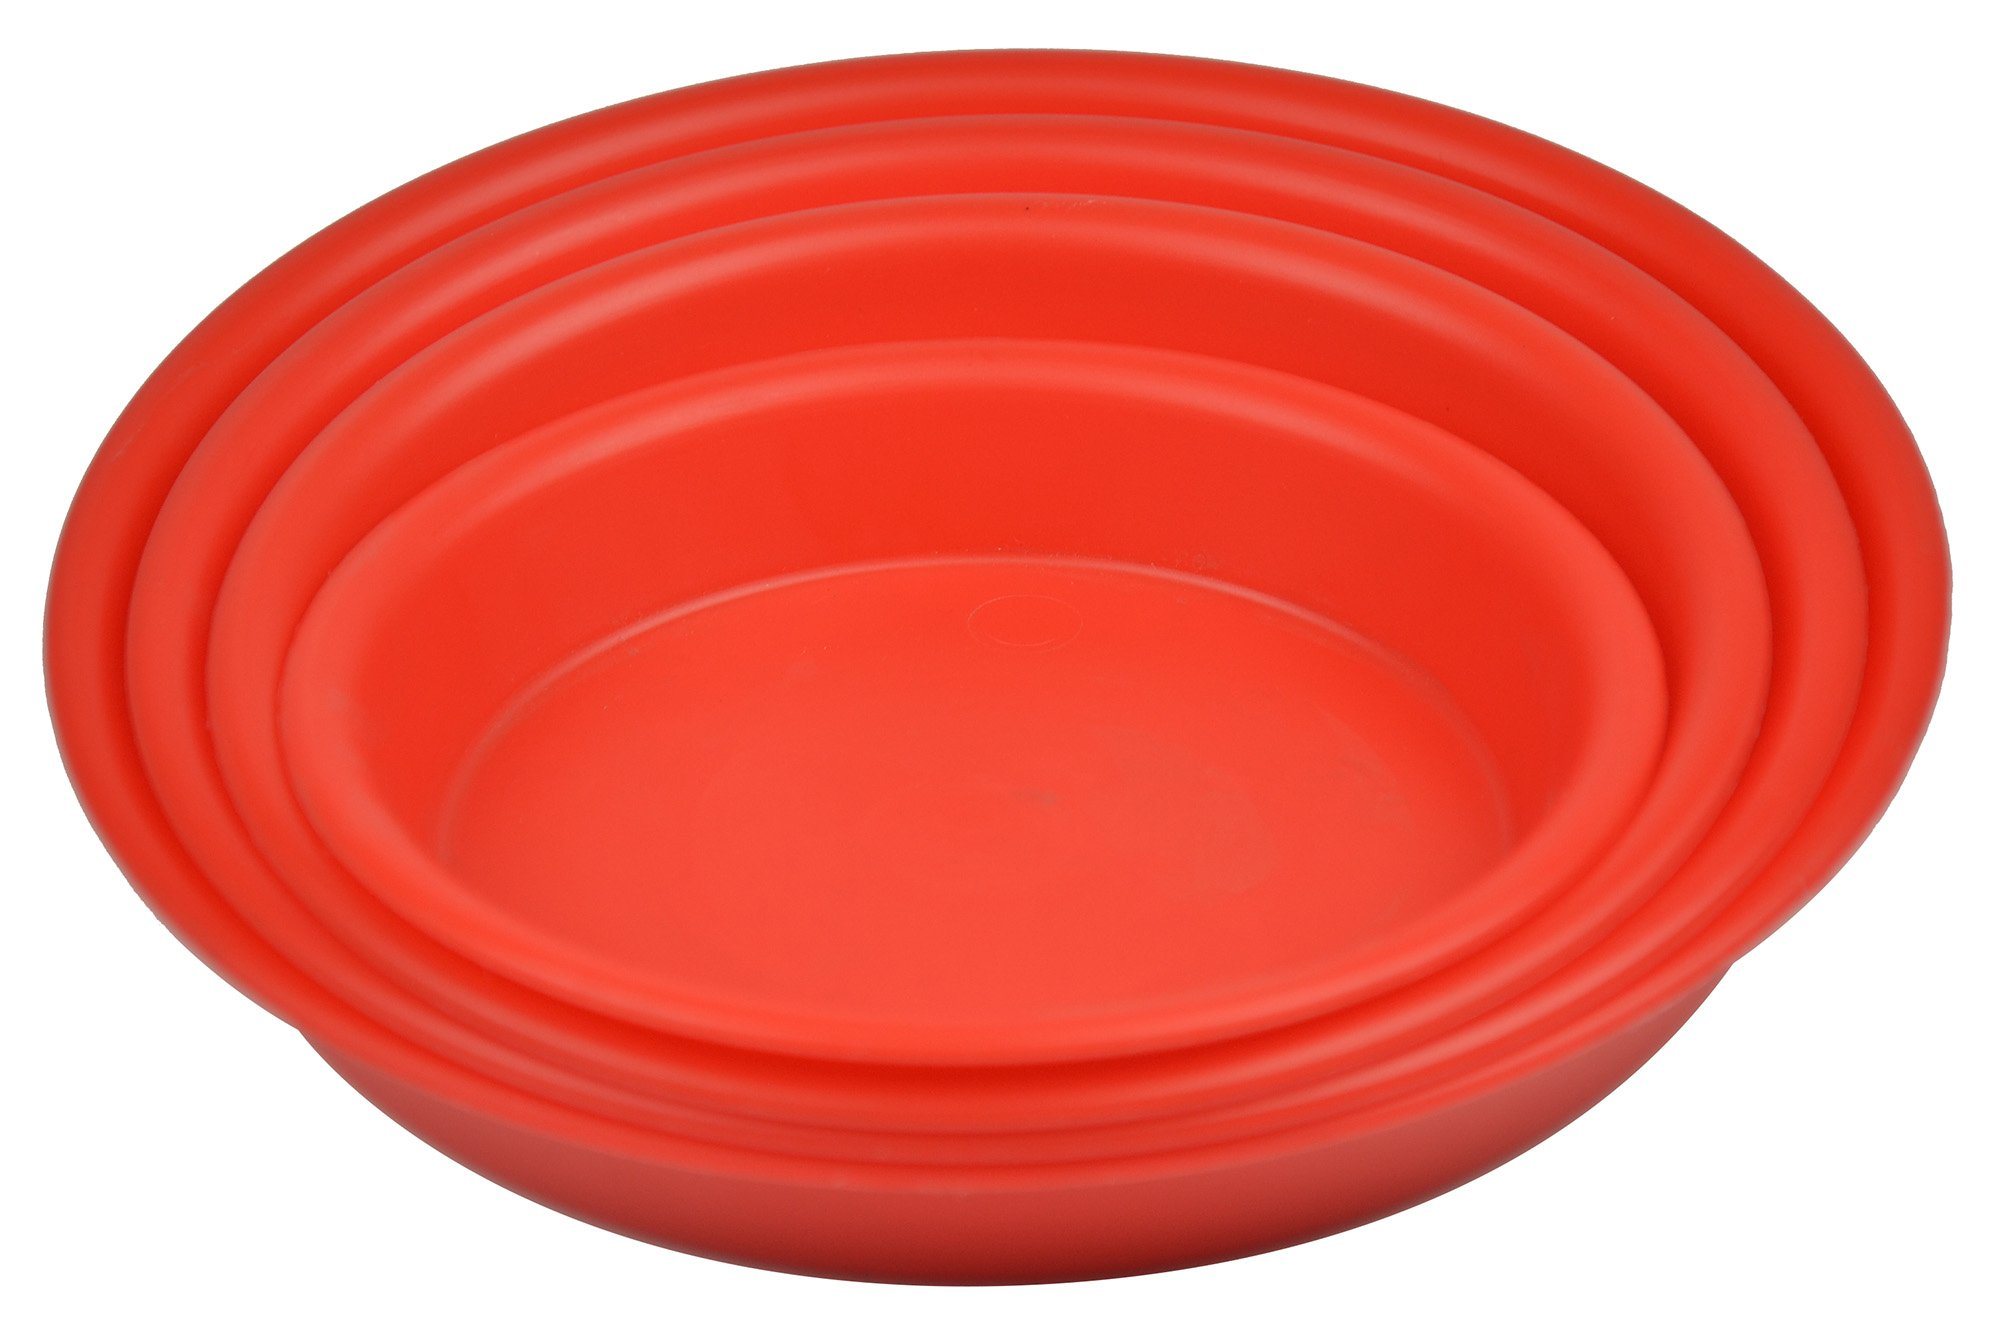 7.7'' Round Plant Saucer Planter Tray Pat Pallet for Flowerpot,Red,960 Count